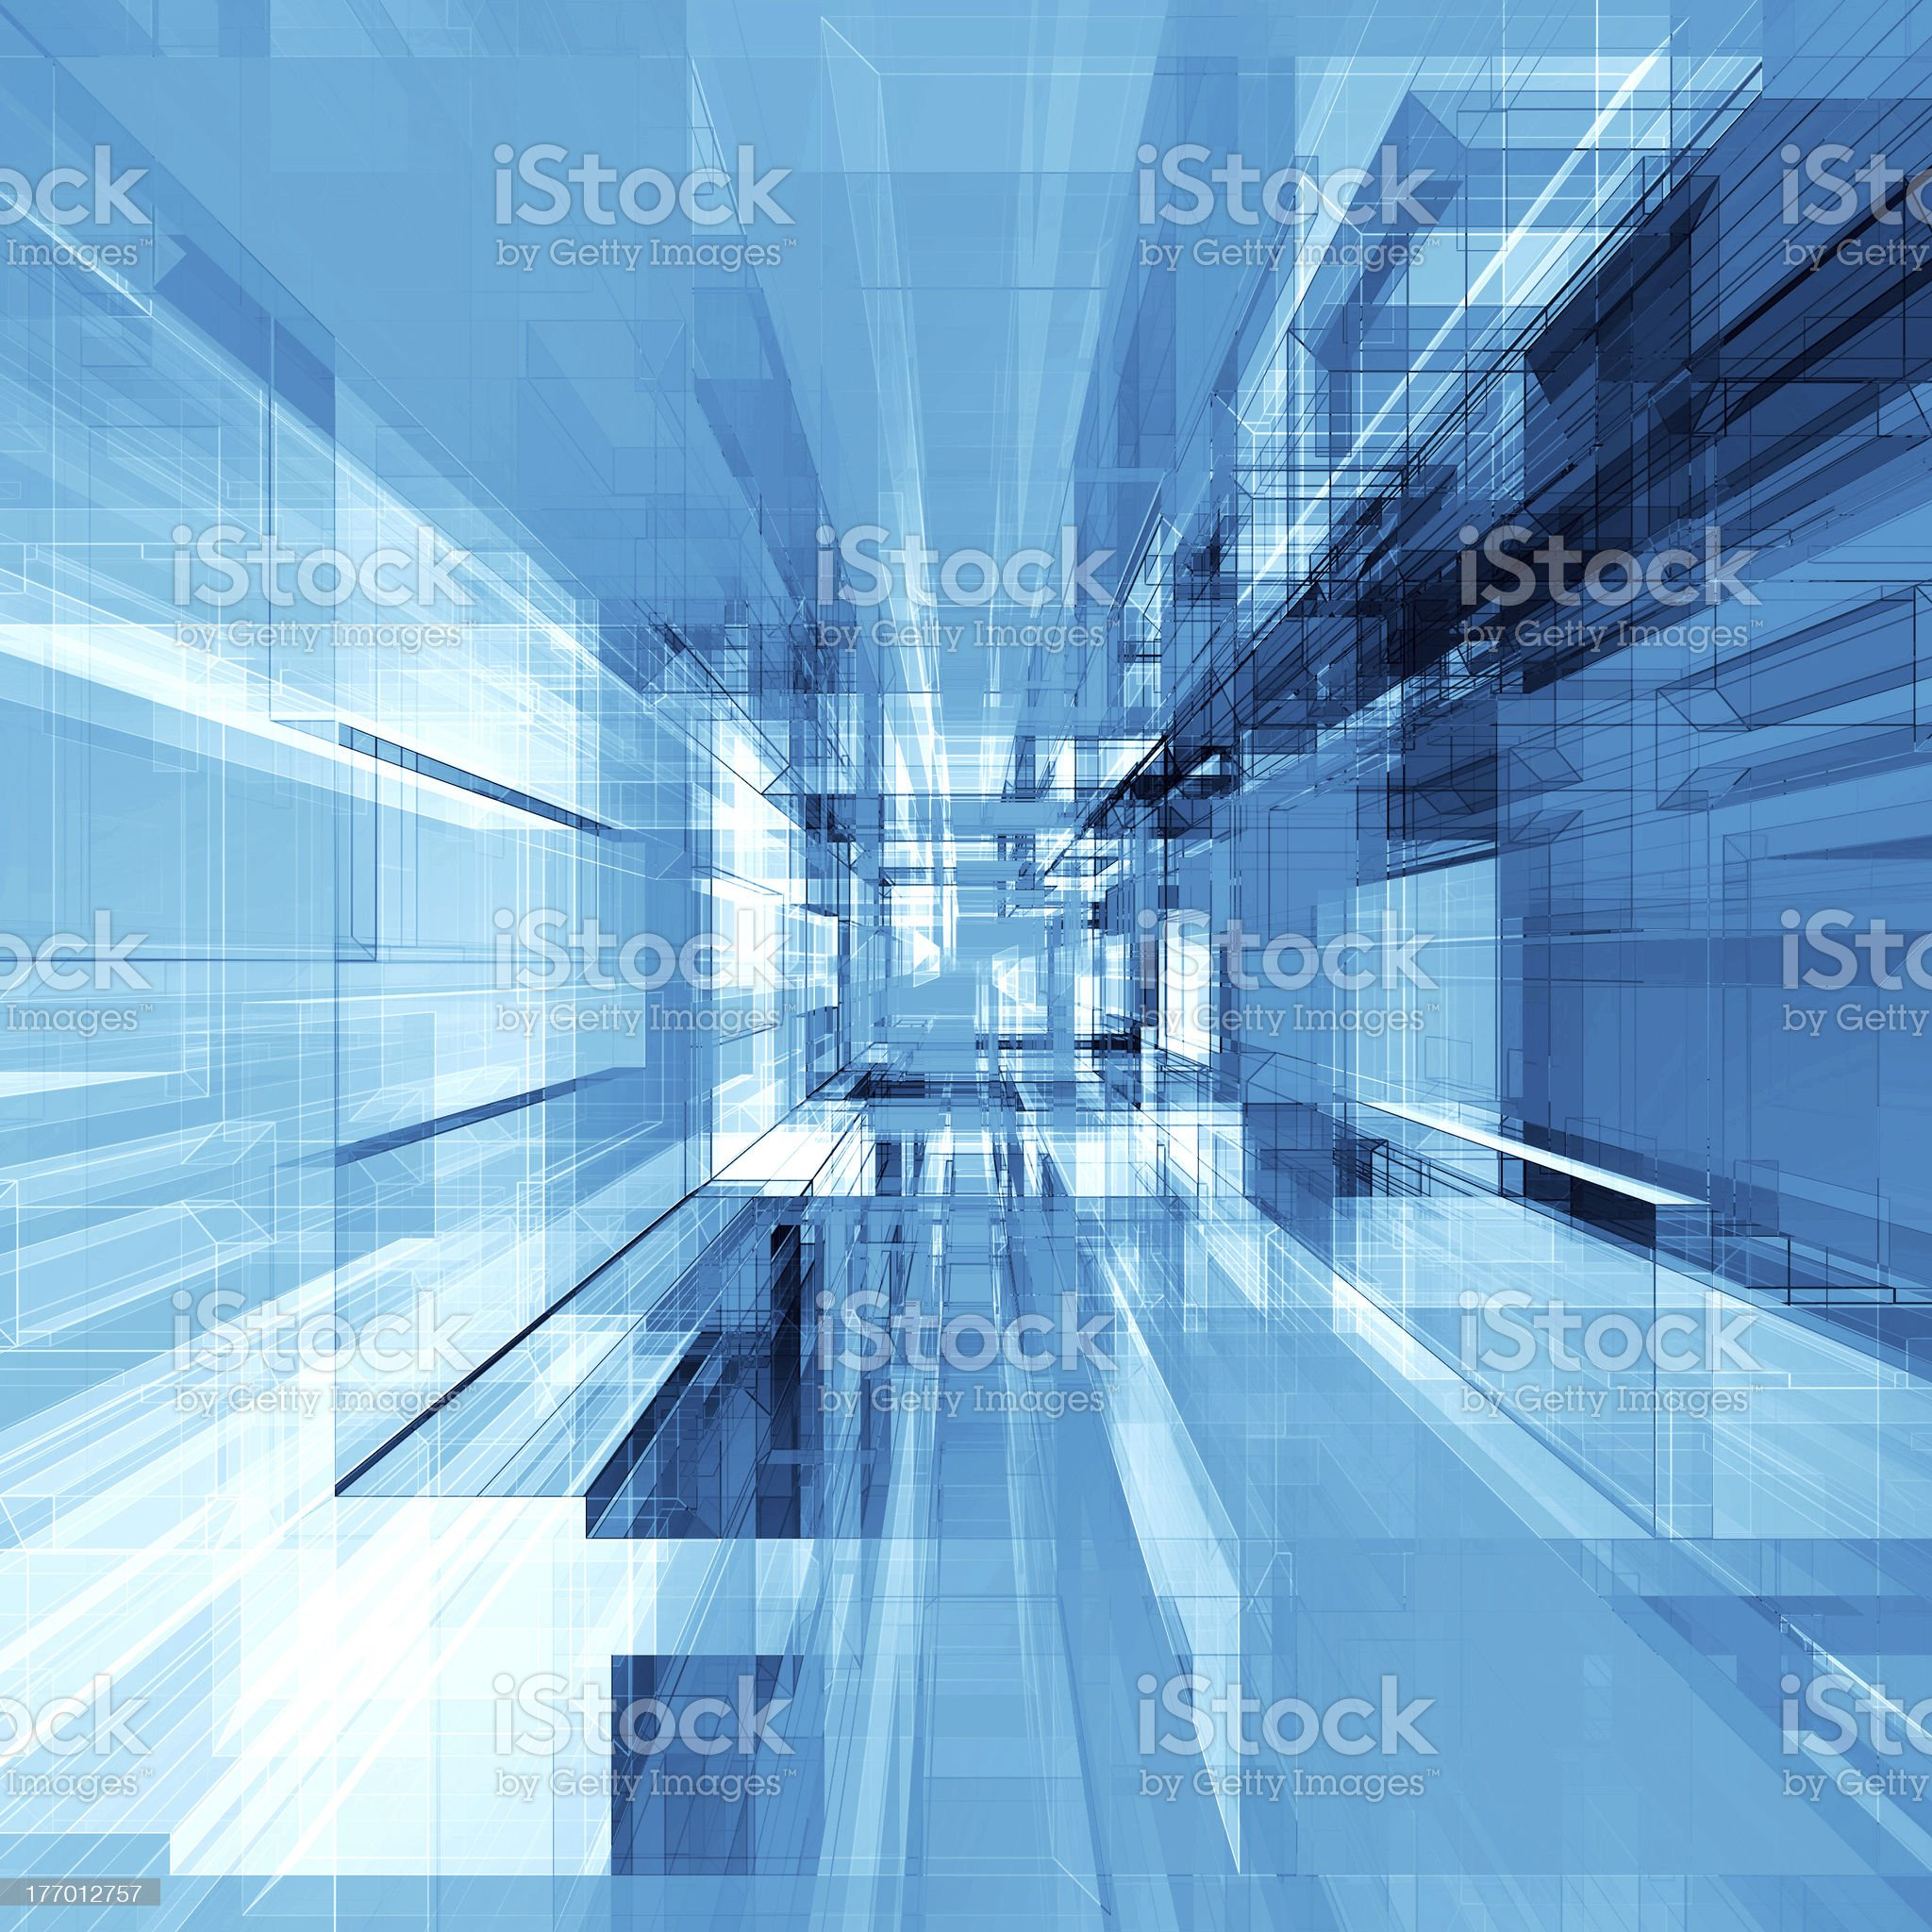 Abstract project royalty-free stock photo